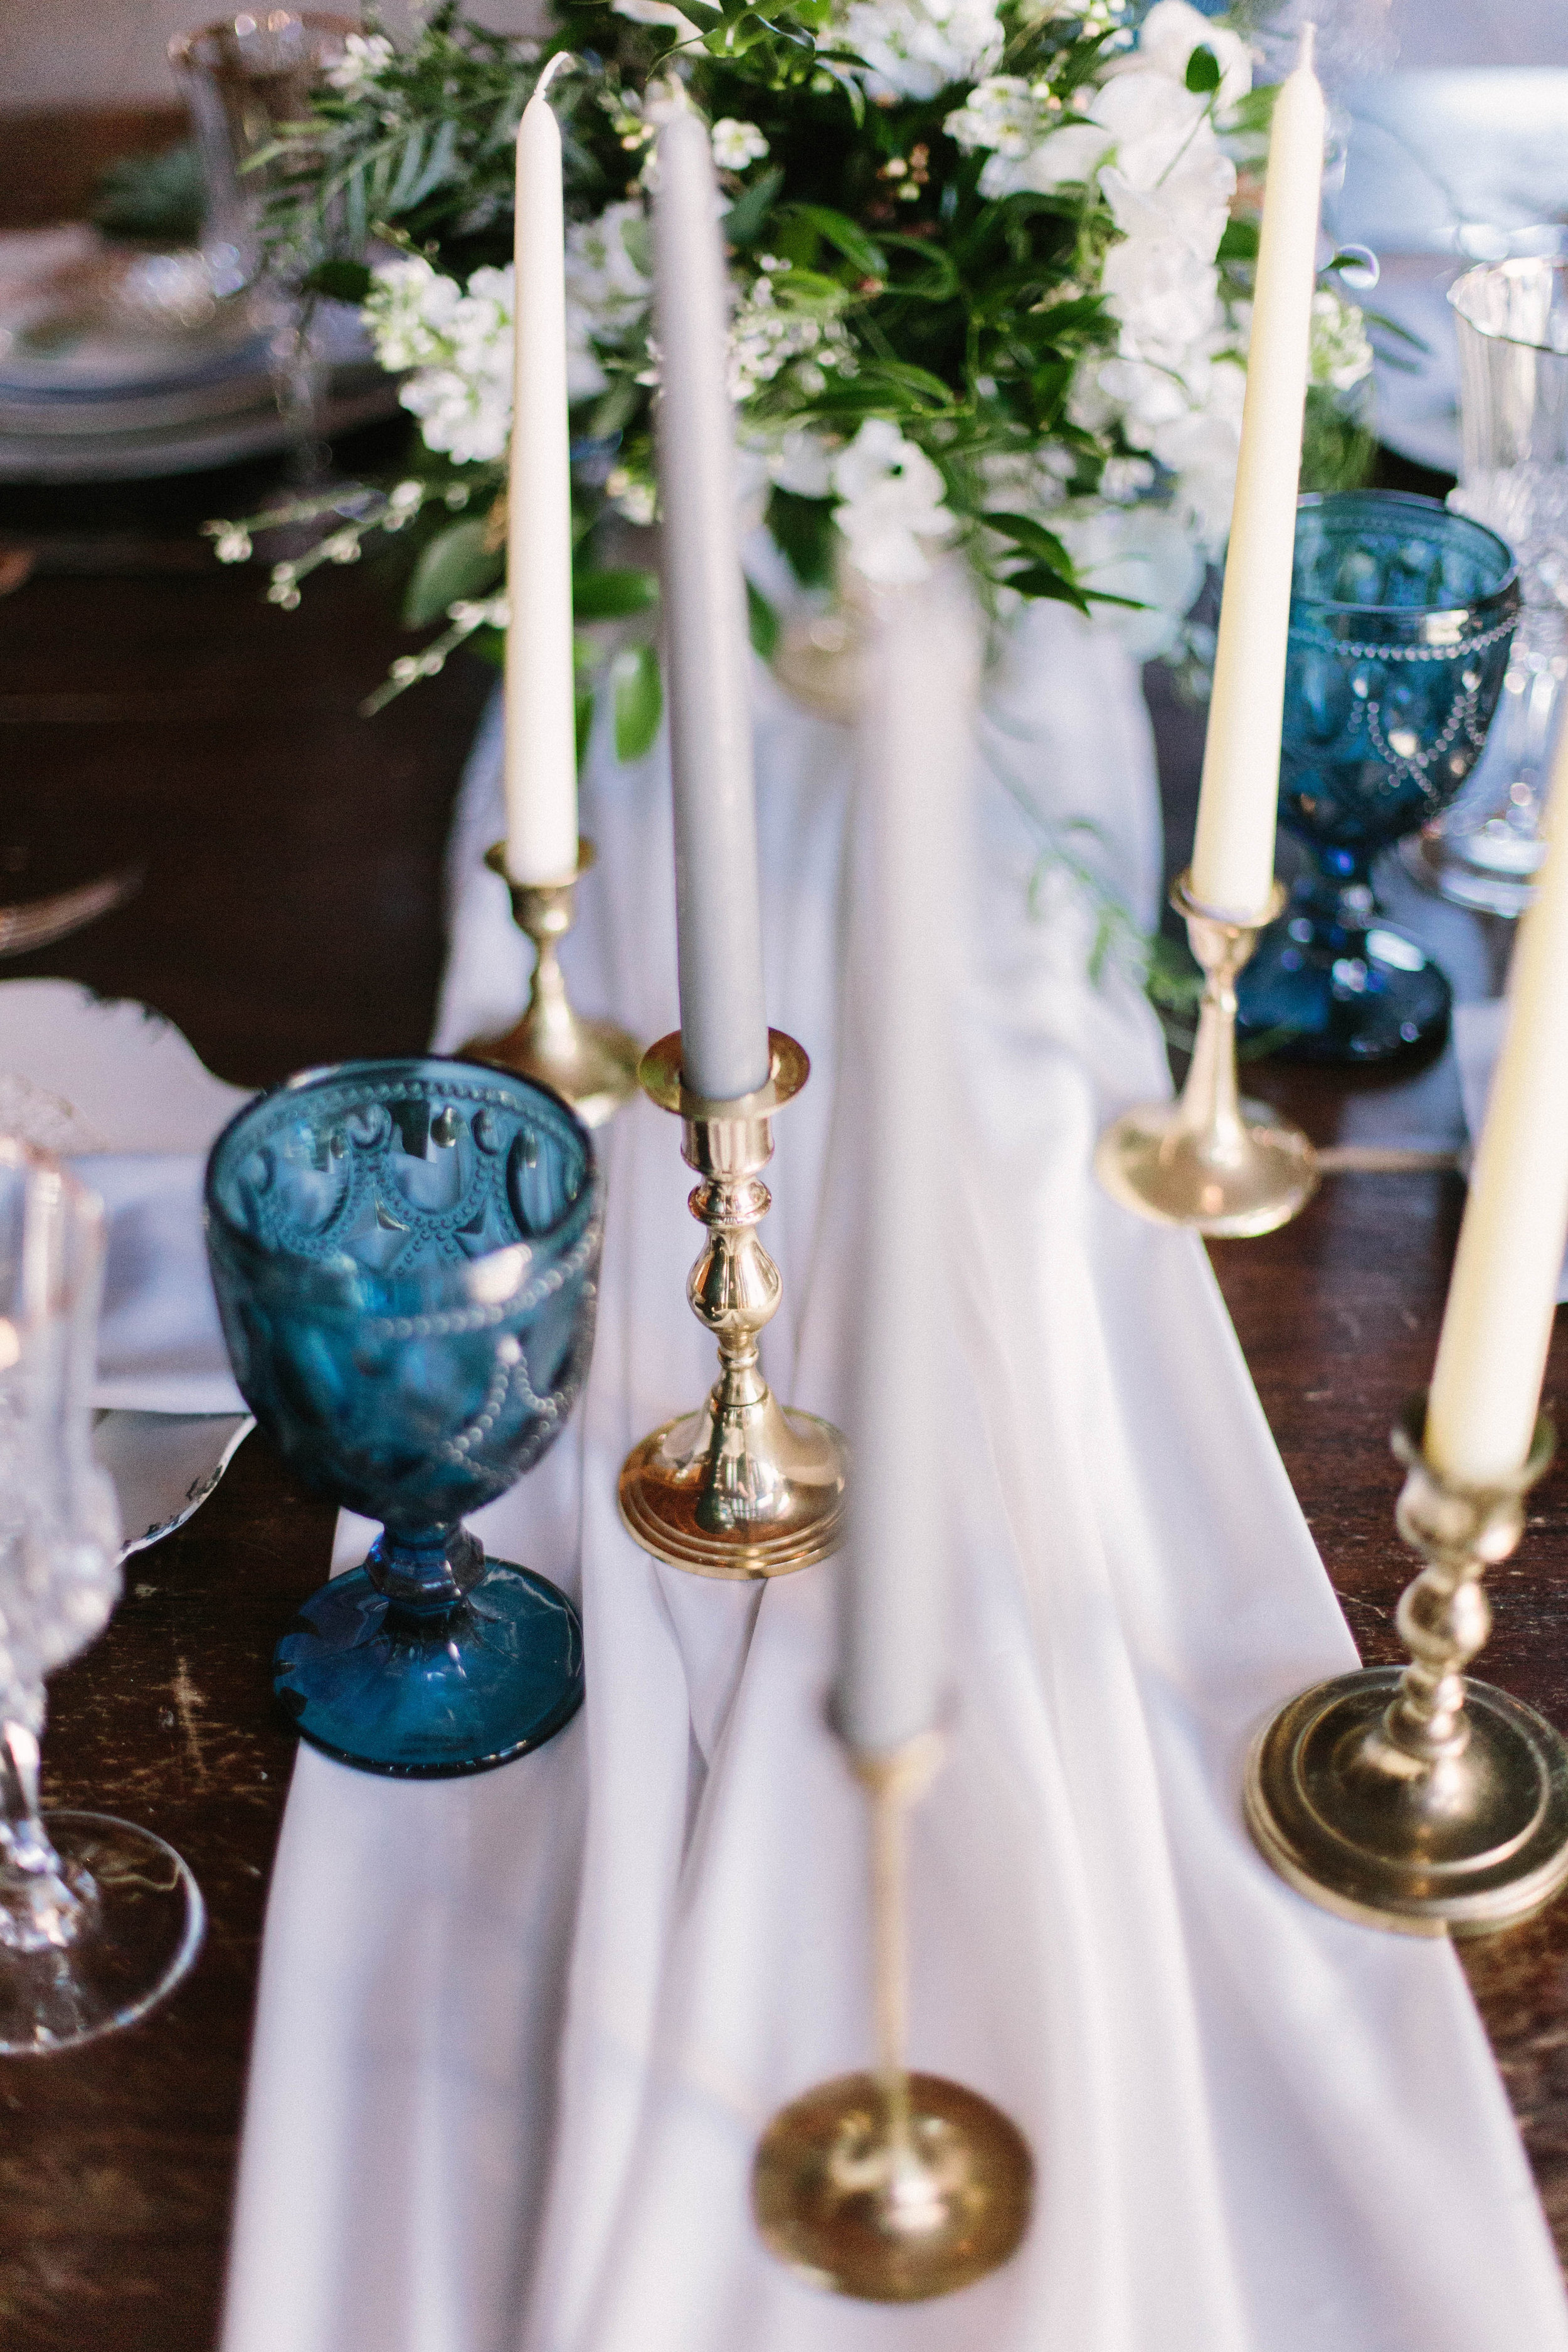 2017 Styled Shoot At The Pour Vineyard Veronica Young Photog-0008.jpg